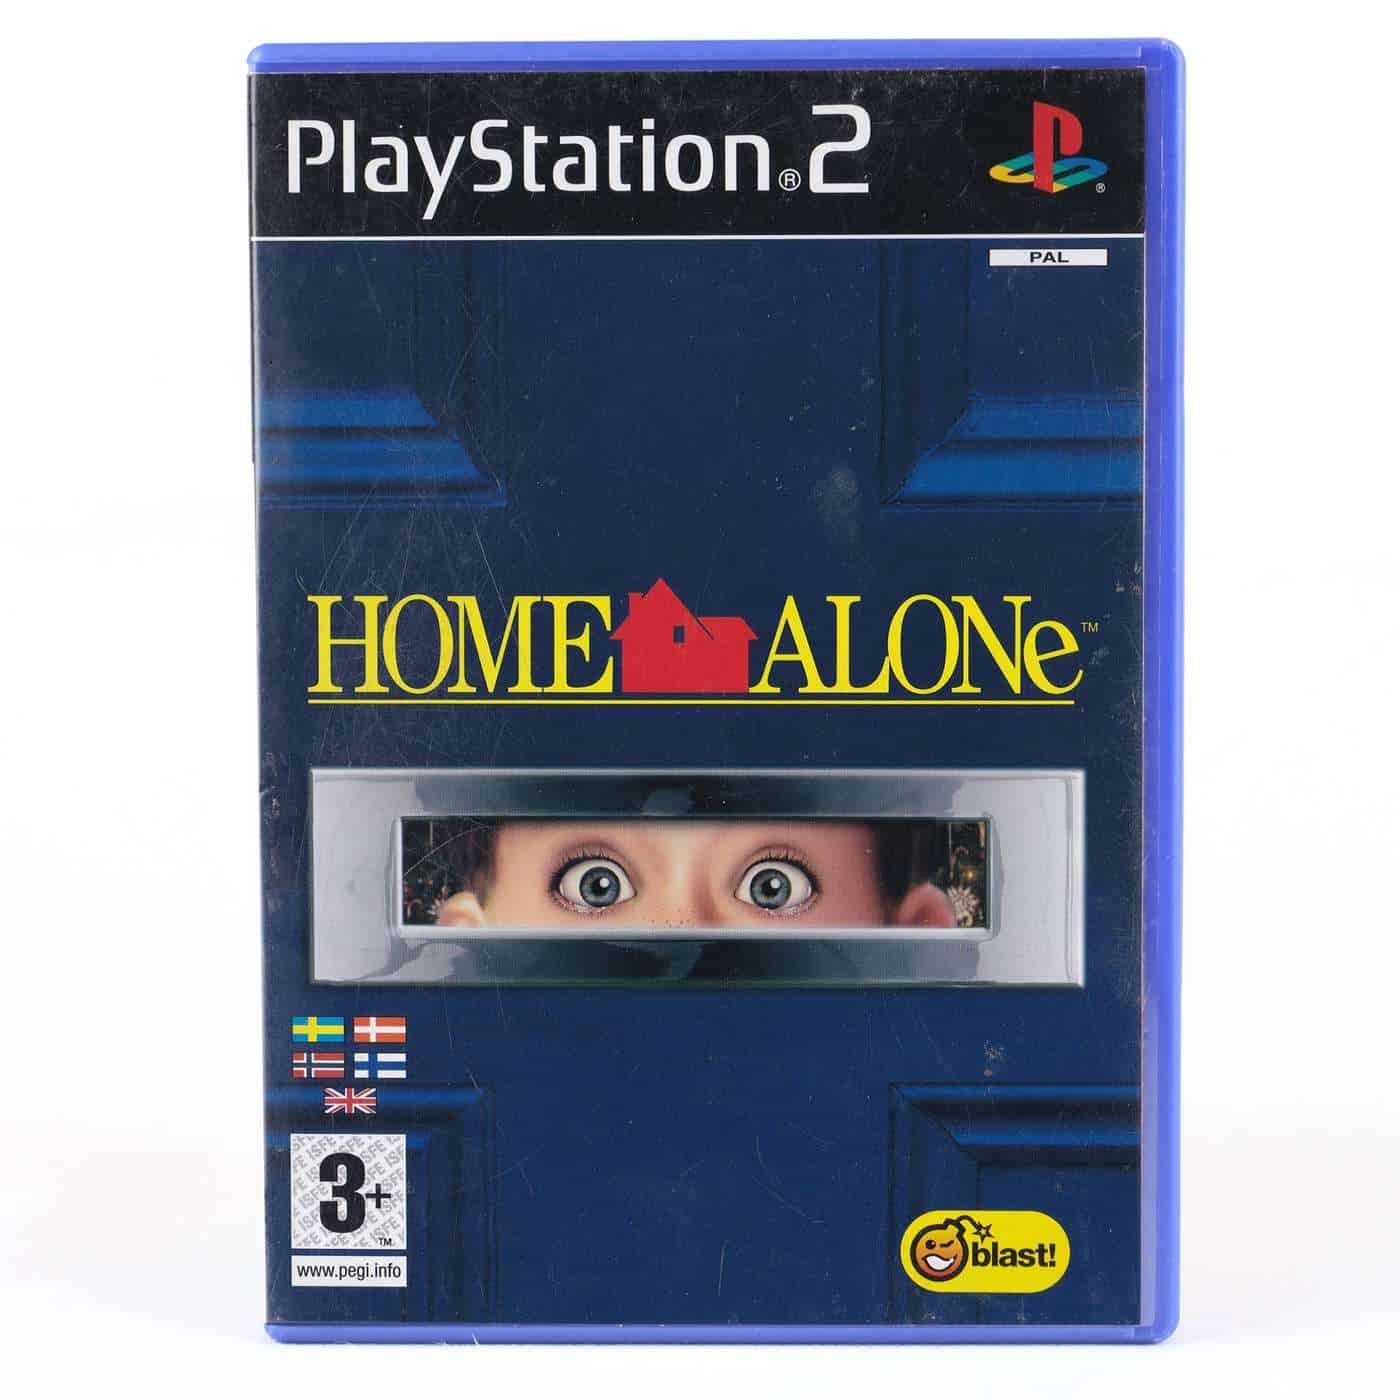 Home Alone (Playstation 2)